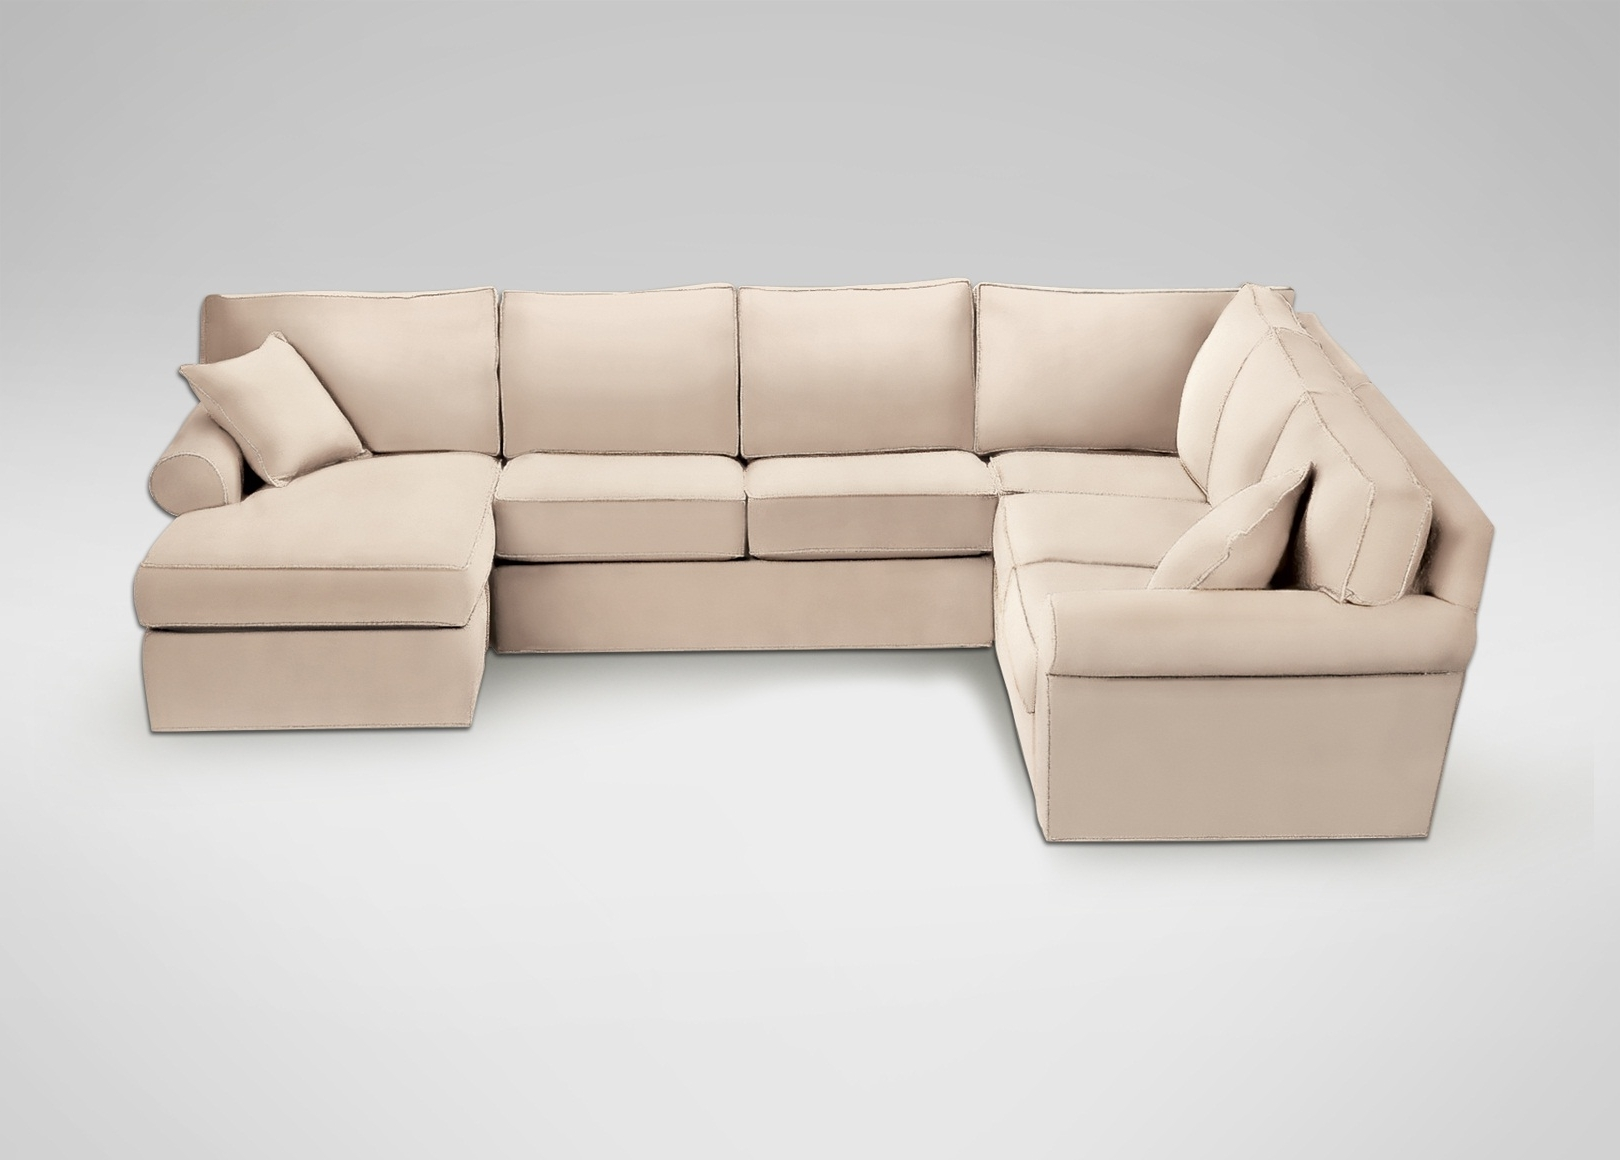 Favorite Sectional Sofas At Ethan Allen For Cool Ethan Allen Sectional Sofas (View 5 of 15)